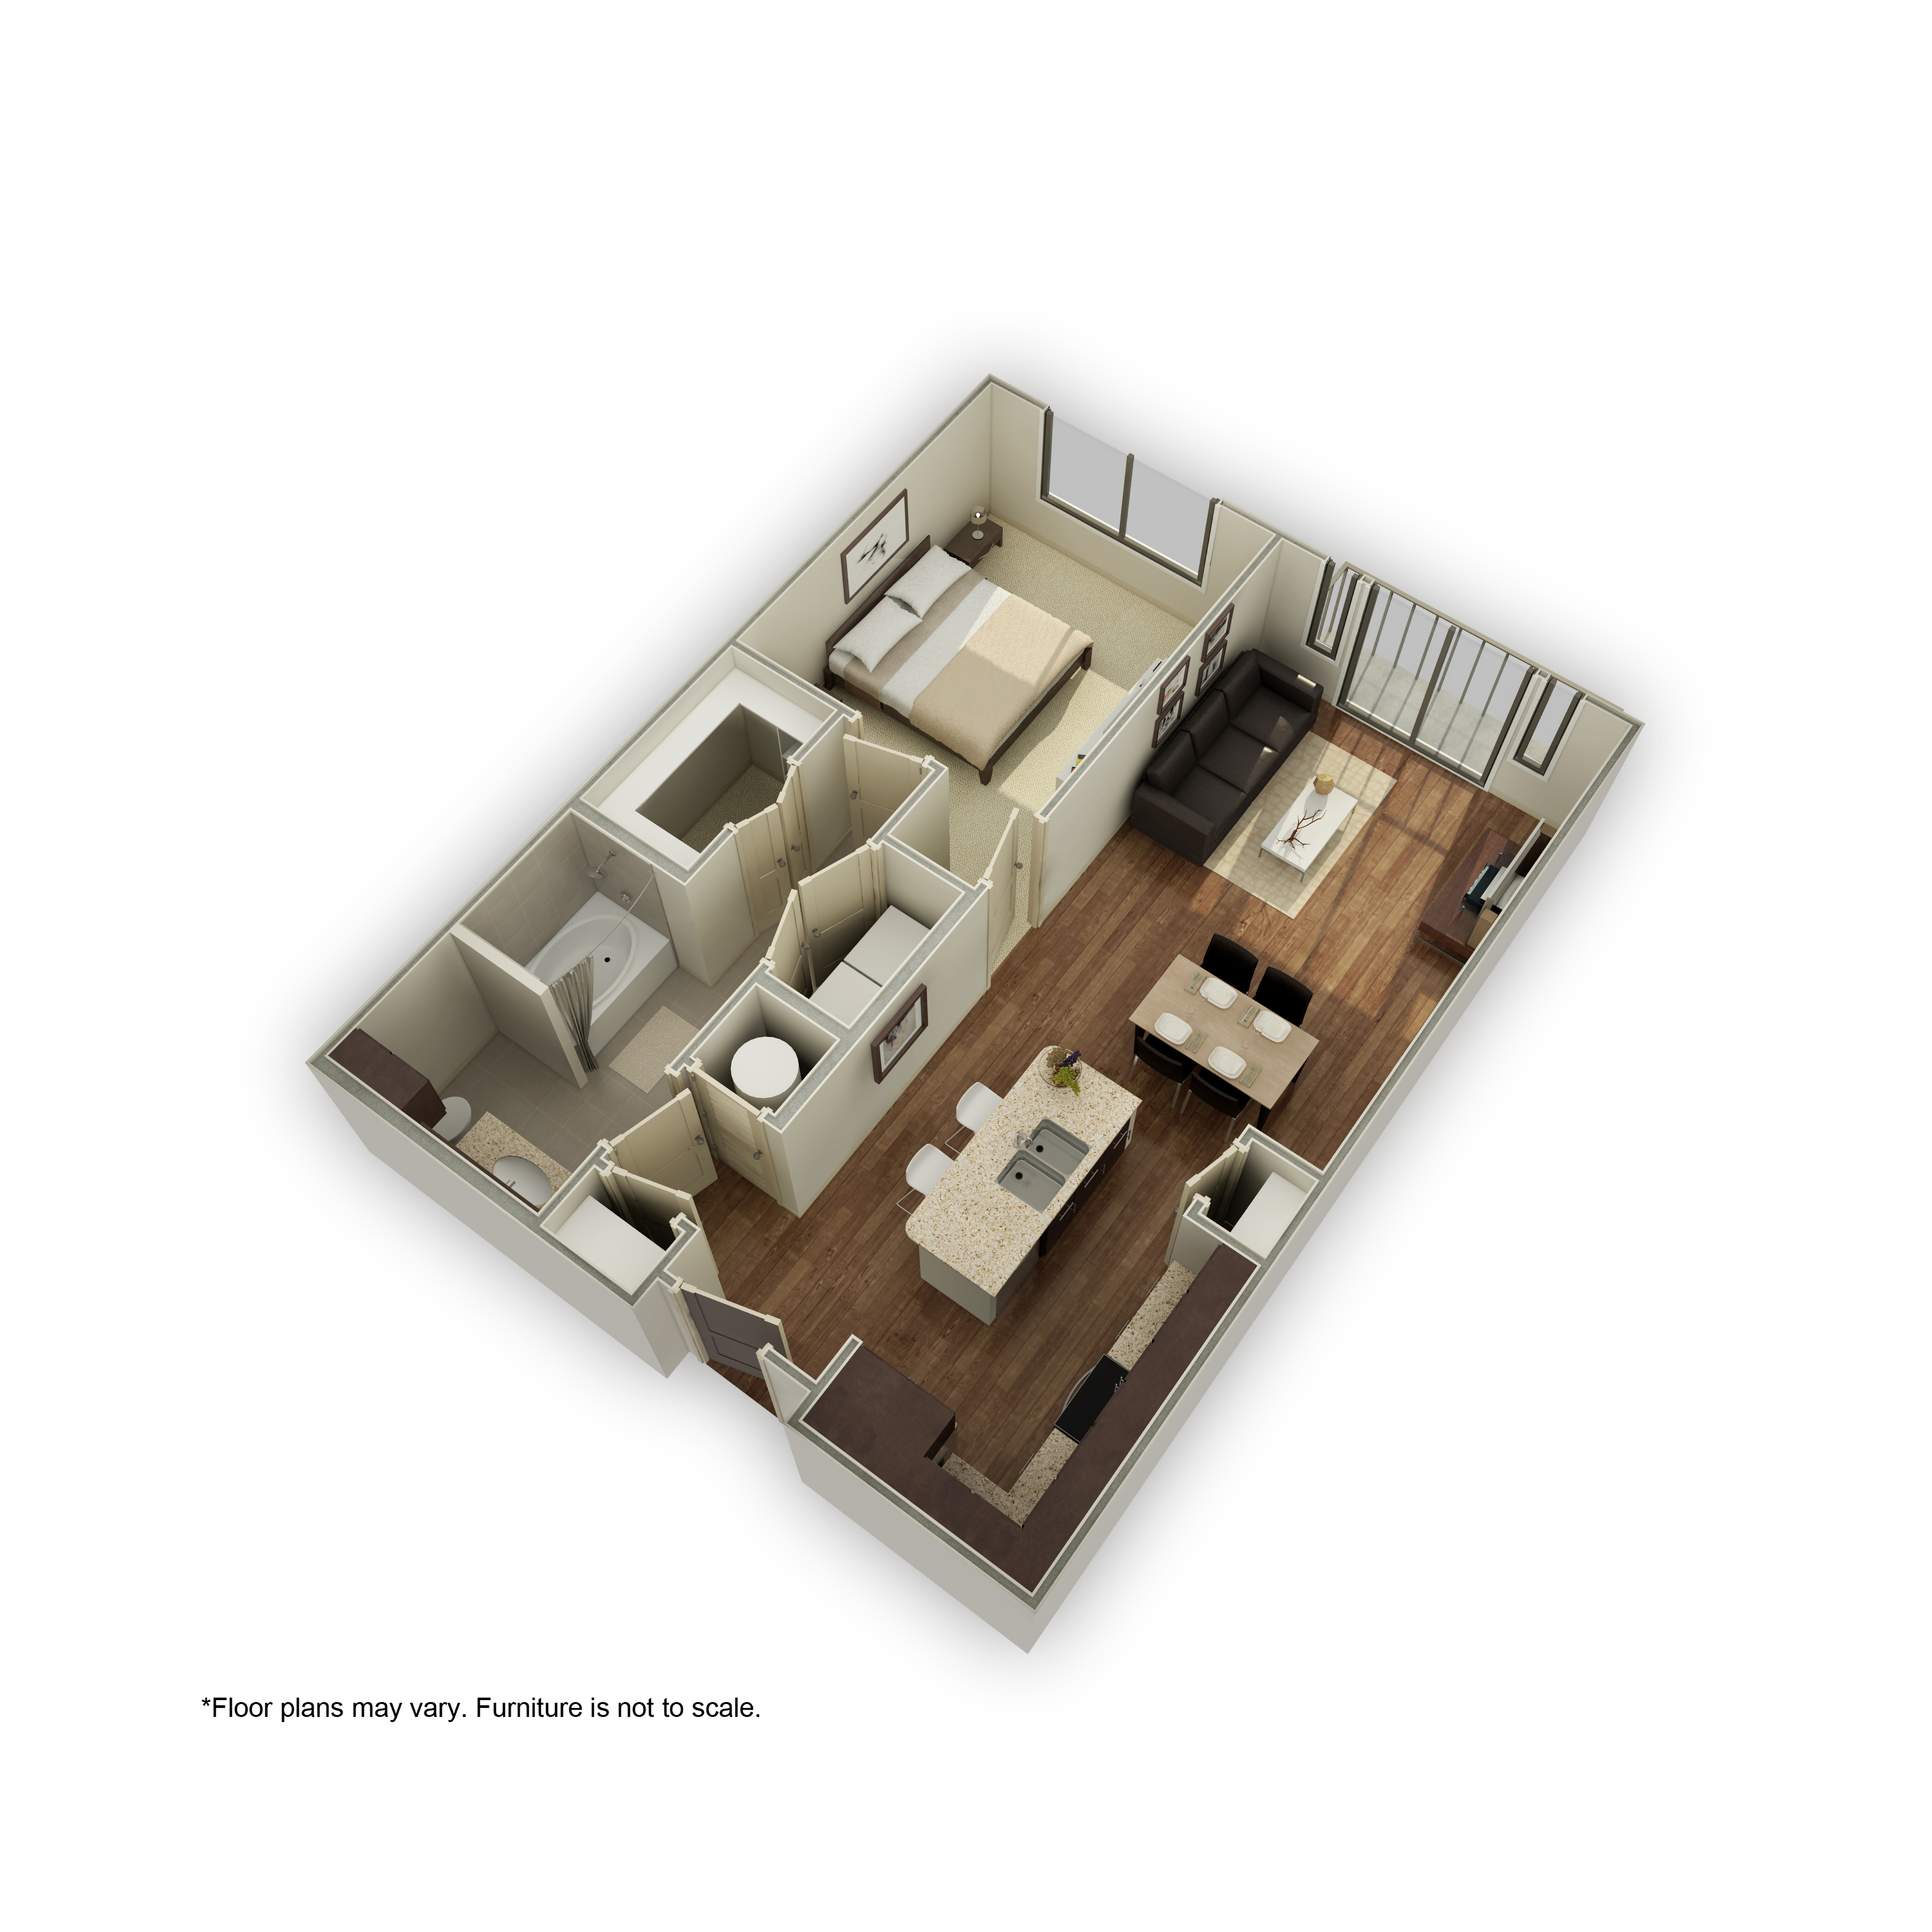 3800-A3 3D Floor Plan | 1 Bedroom with 1 Bath | 808 Square Feet | 3800 Main | Apartment Homes